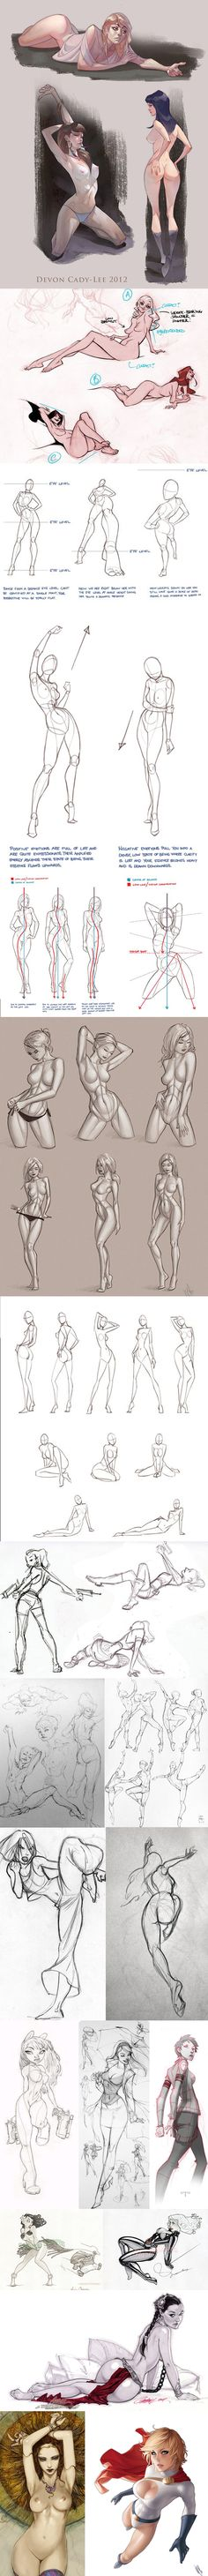 great pose info - female Body study - anatomical reference - woman in different positions - drawing reference Drawing Techniques, Drawing Tips, Drawing Reference, Drawing Sketches, Sketching, Art Drawings, Anatomy Reference, Body Drawing, Anatomy Drawing